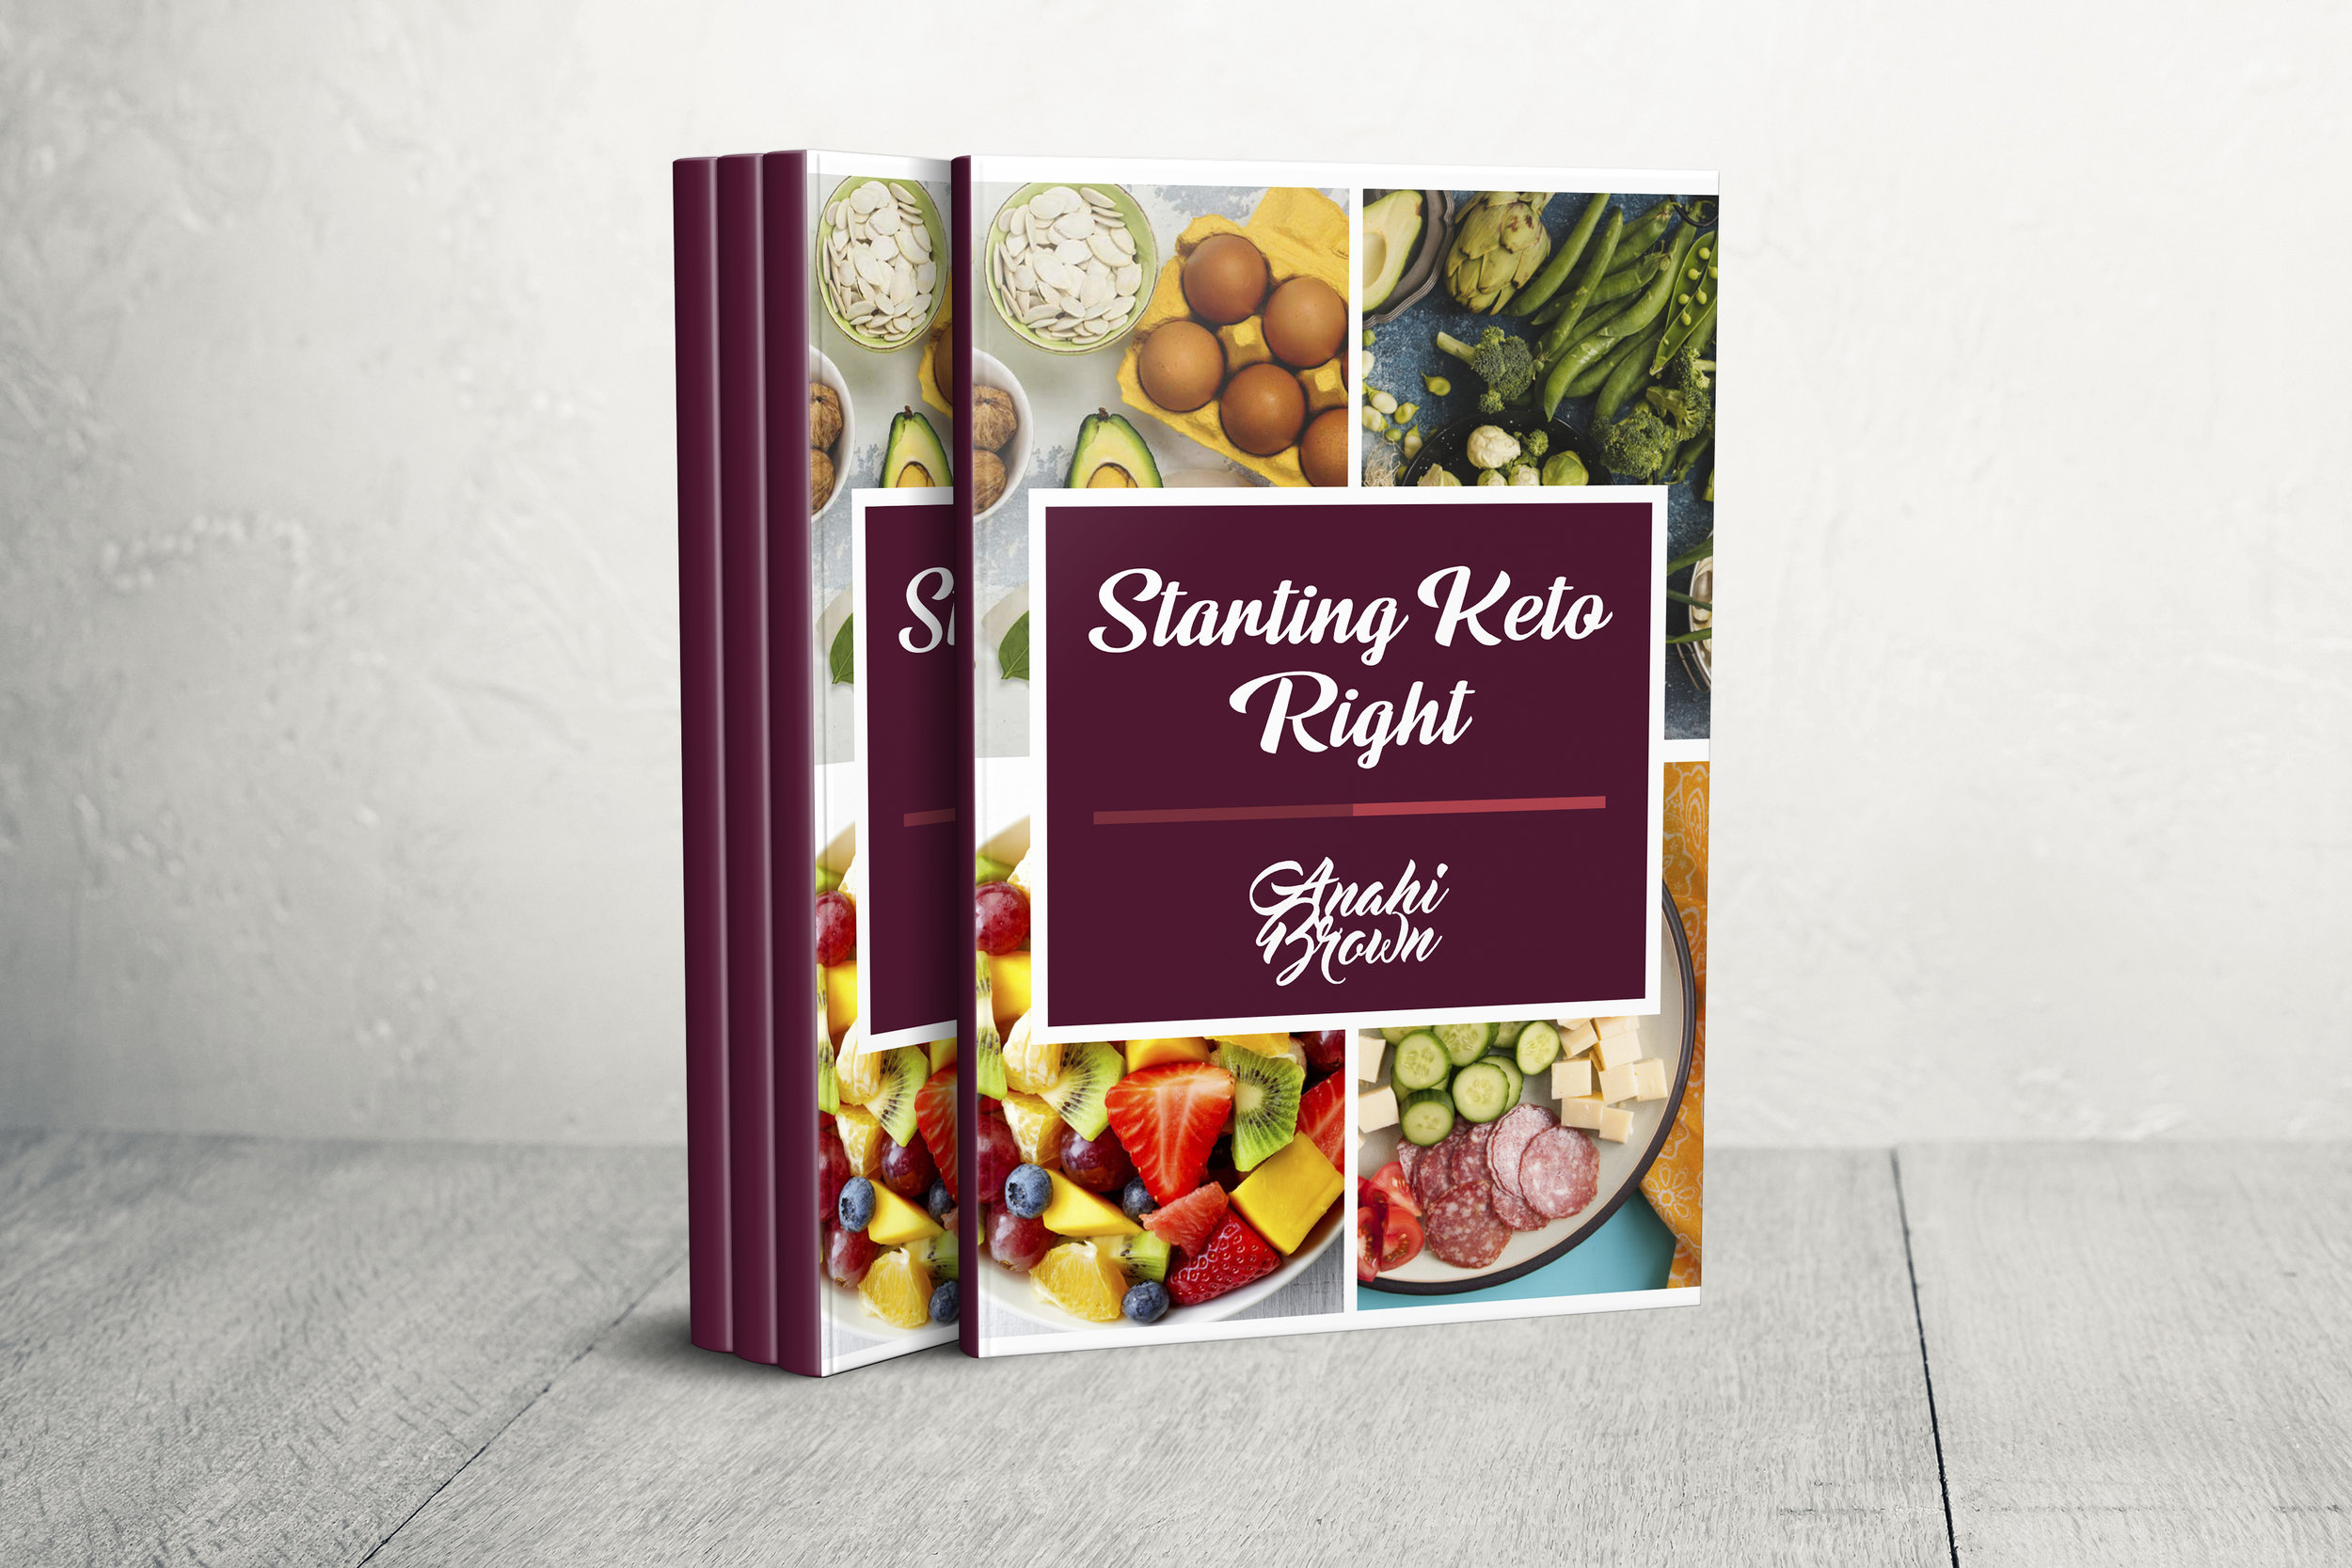 Want to try Keto with the tools you need to succeed? - I have you covered!My Start Keto Right! Packages are ideal for anyone looking to give Keto a go without losing your mind!E-books, recipes, masterclasses and Online support. My Keto 101 - Starting Keto Right! Level is what you need!